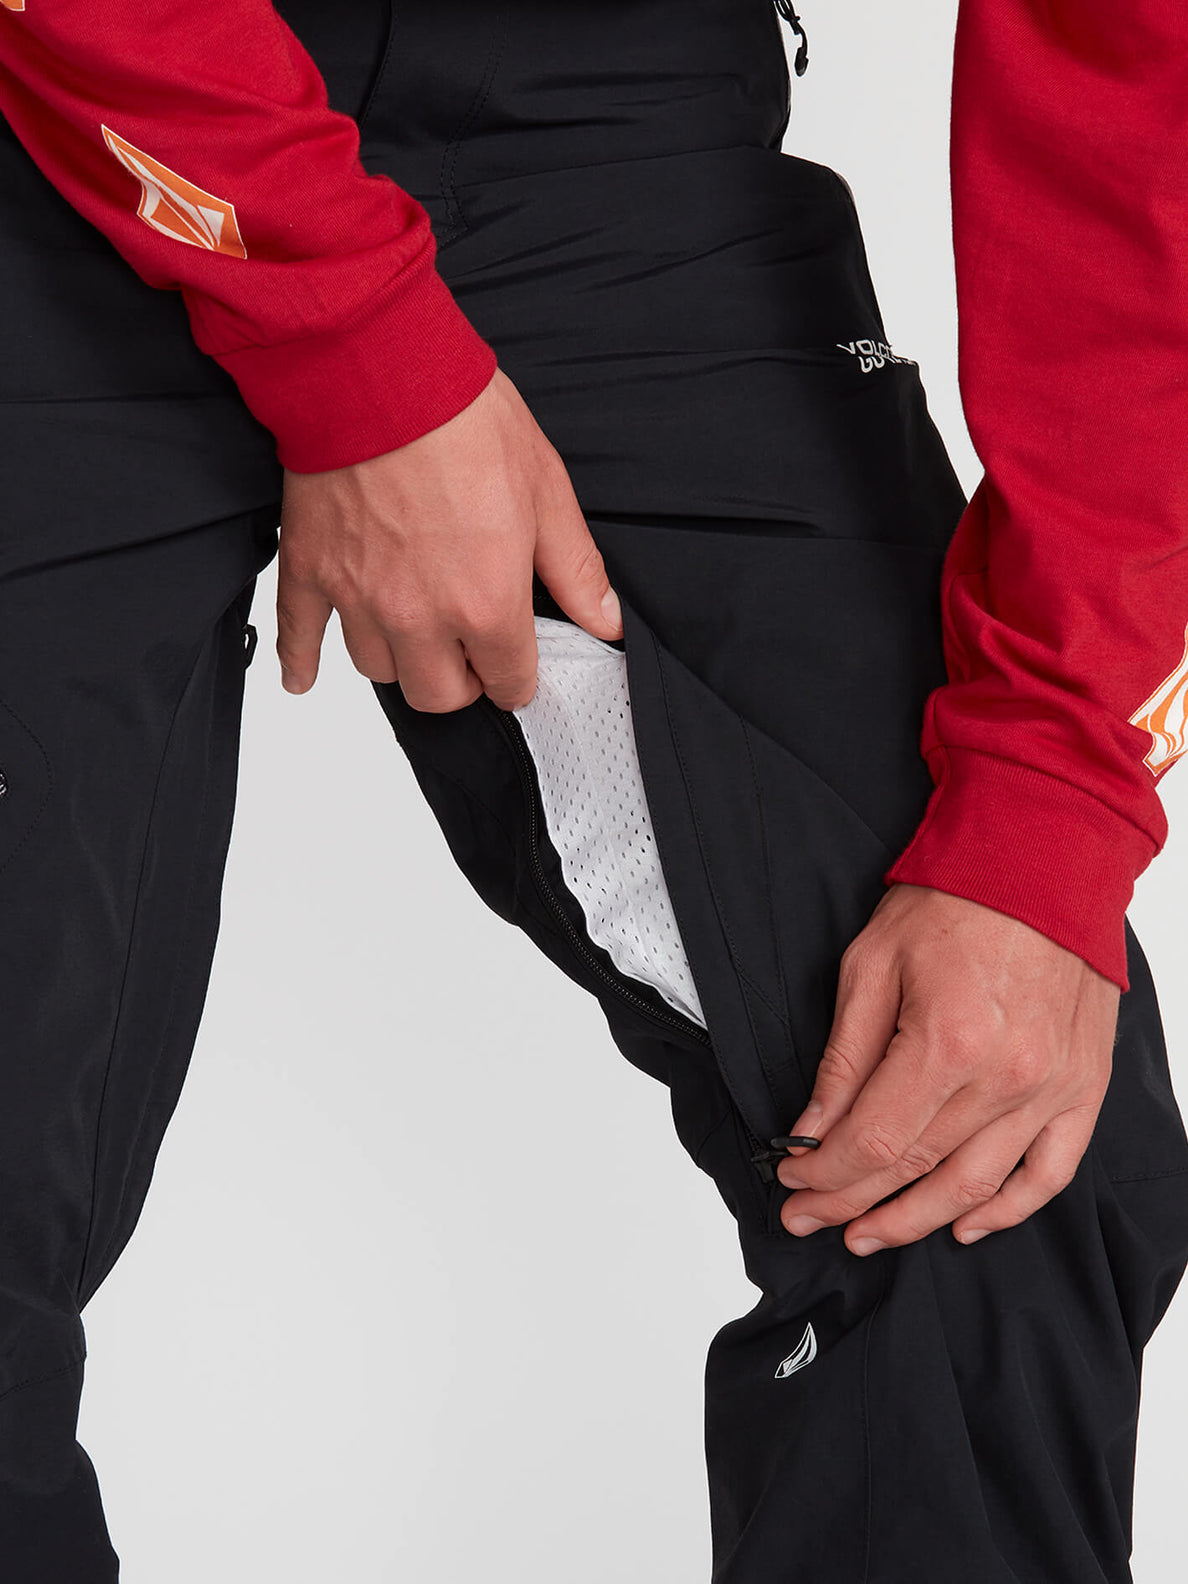 L Gore-Tex Pants - Black (G1351904_BLK) [04]